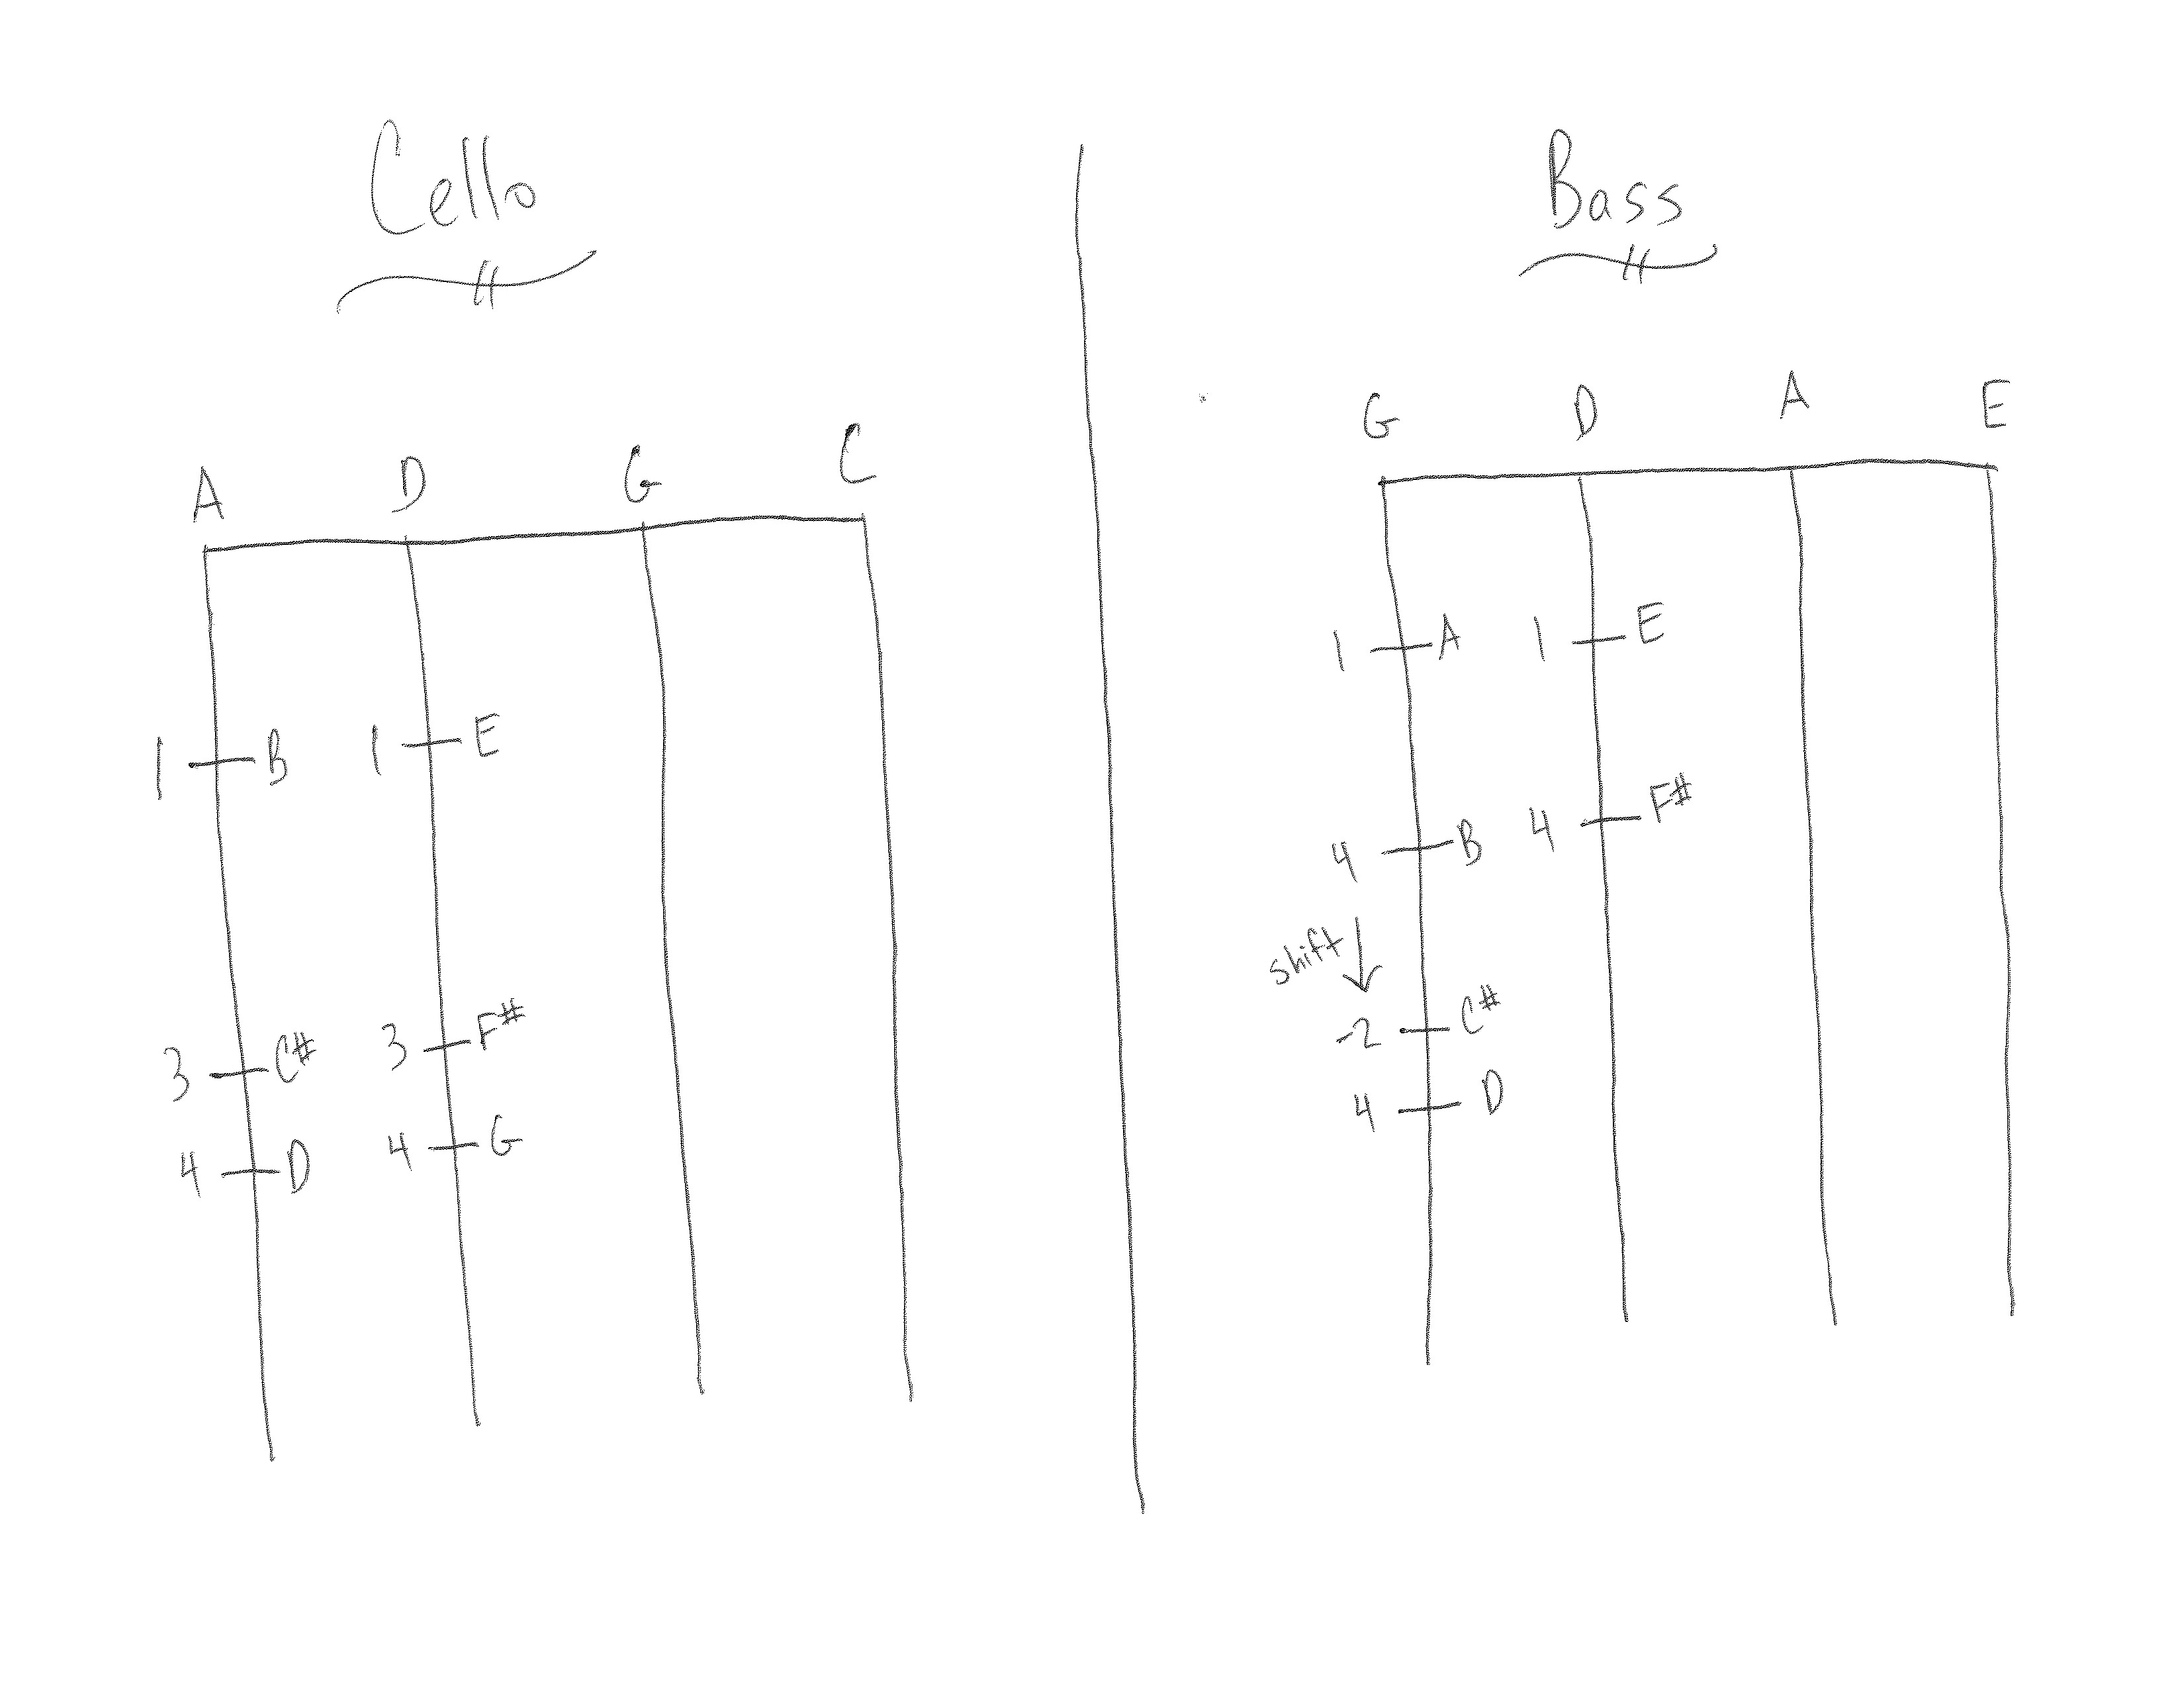 Fingering Chart for Cello and Bass